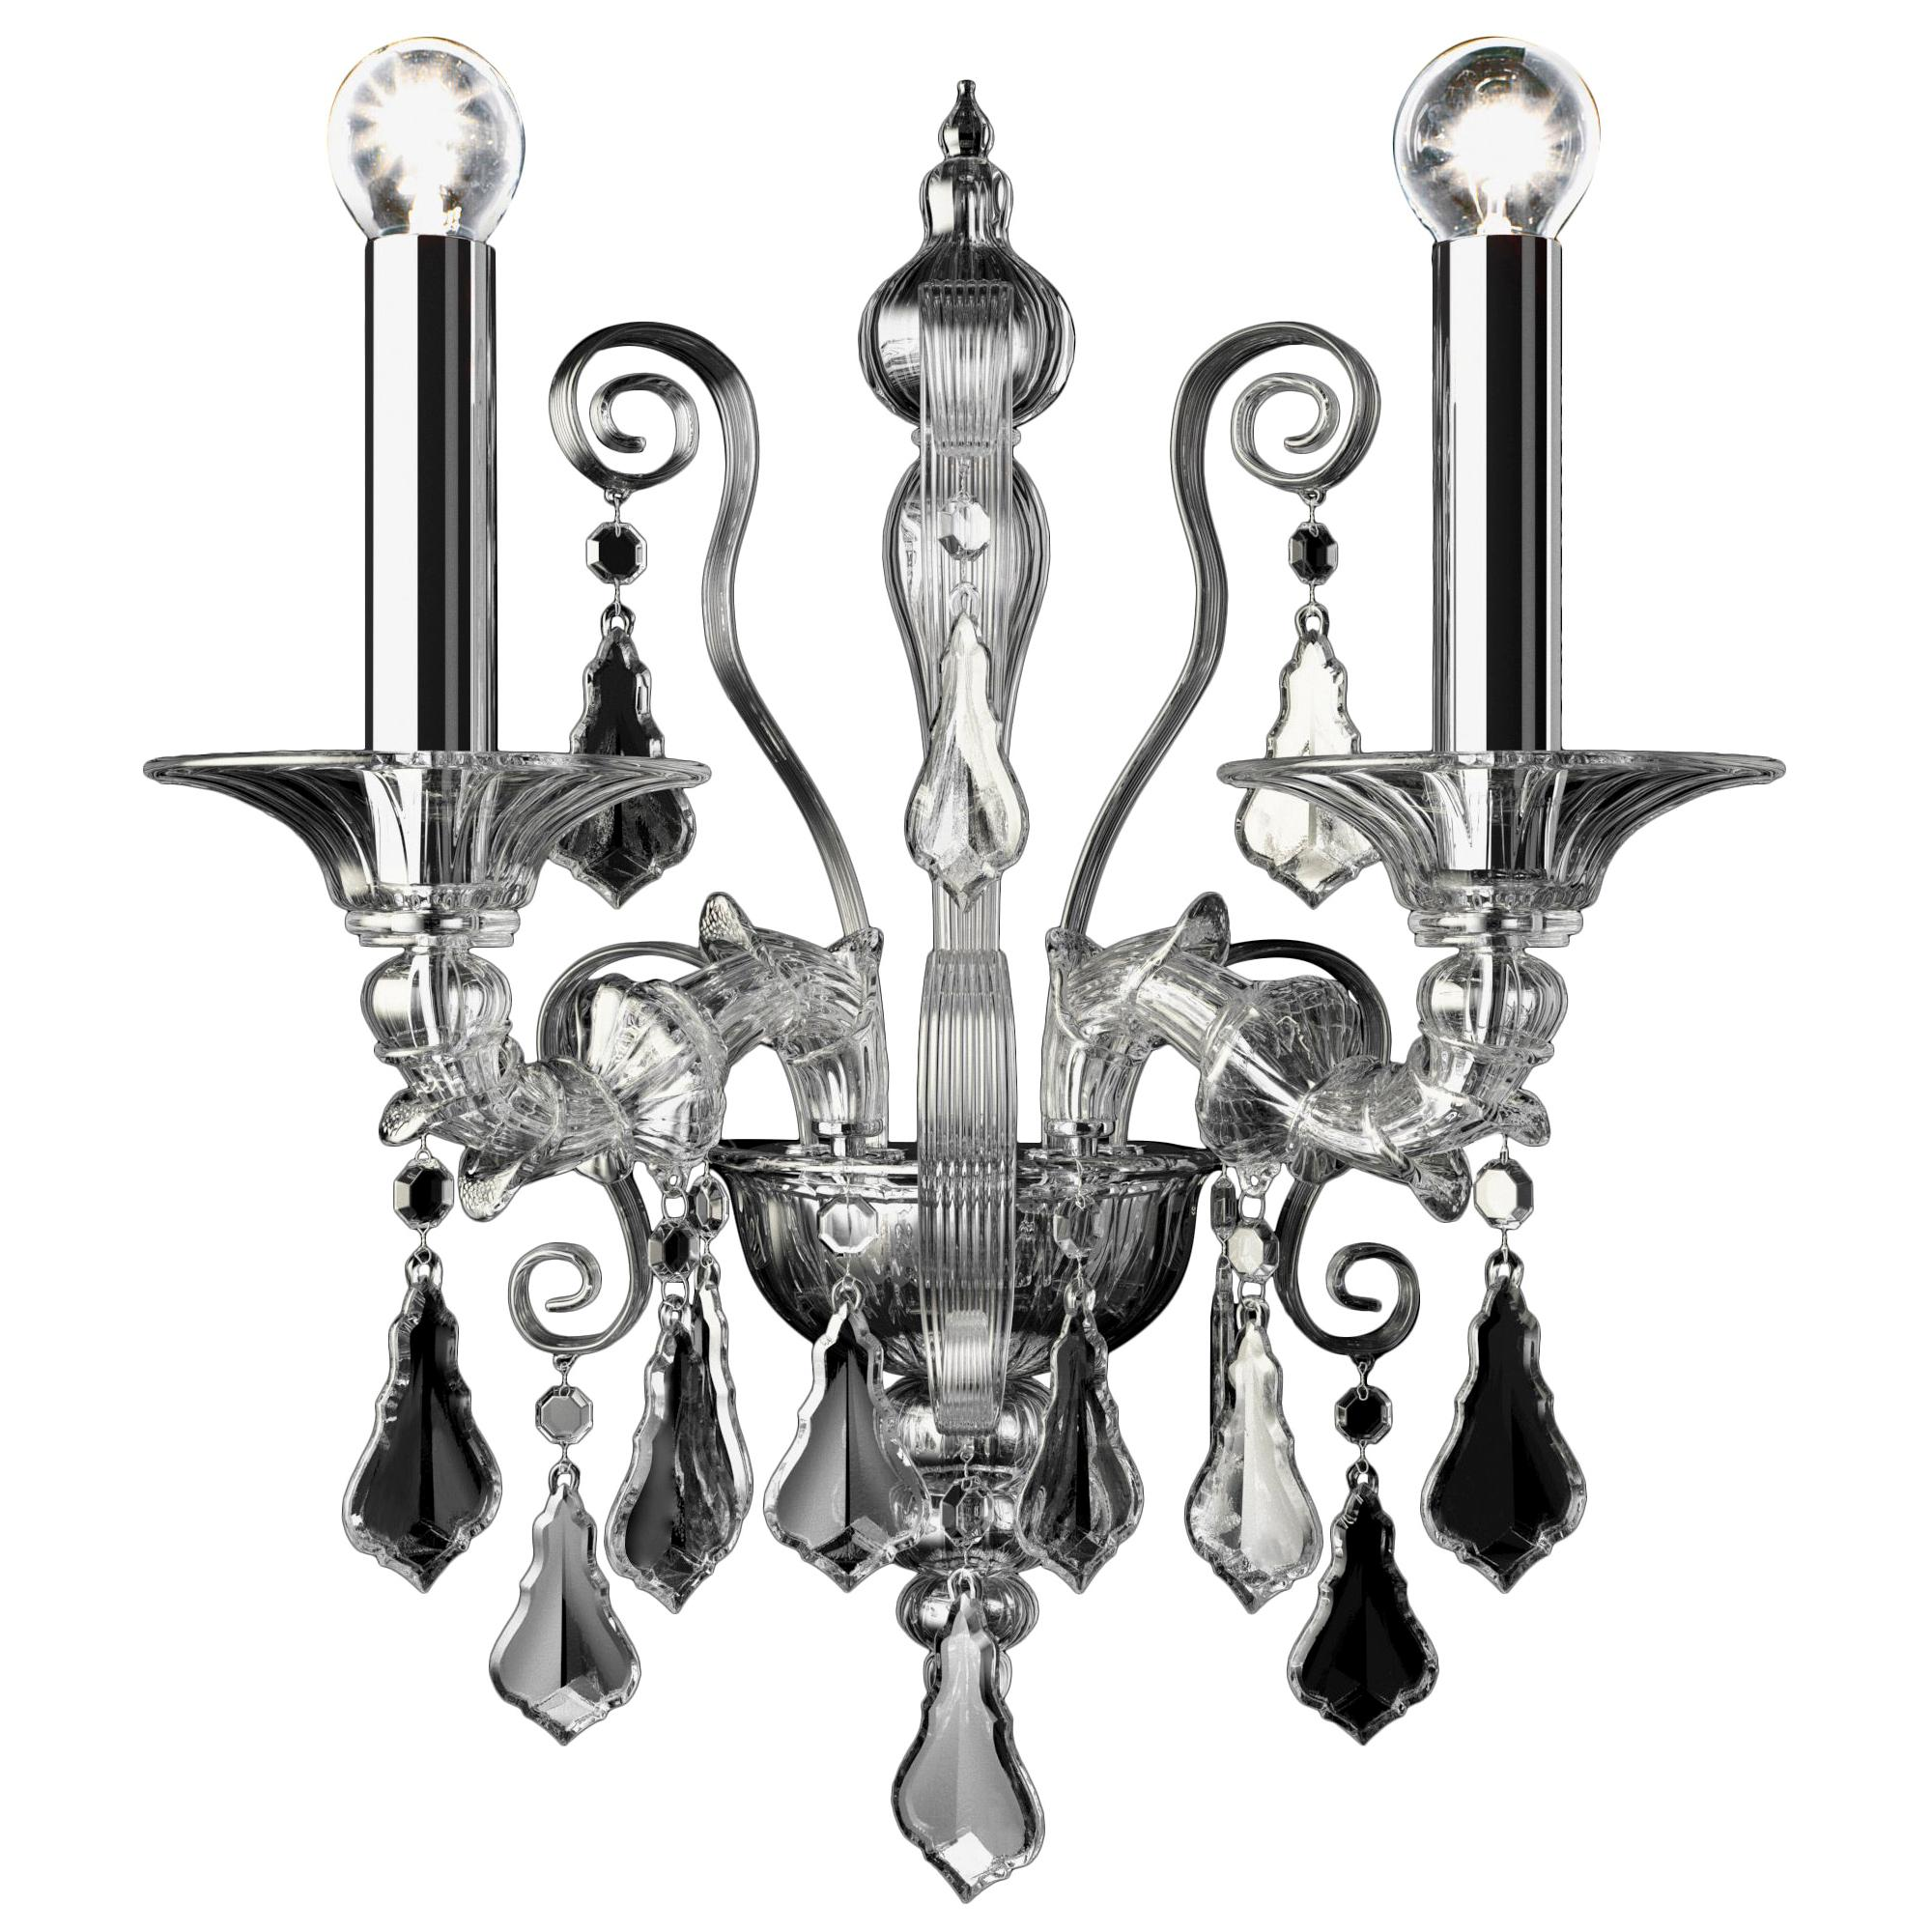 Riyadh 5349 02 Wall Sconce in Glass, by Barovier&Toso